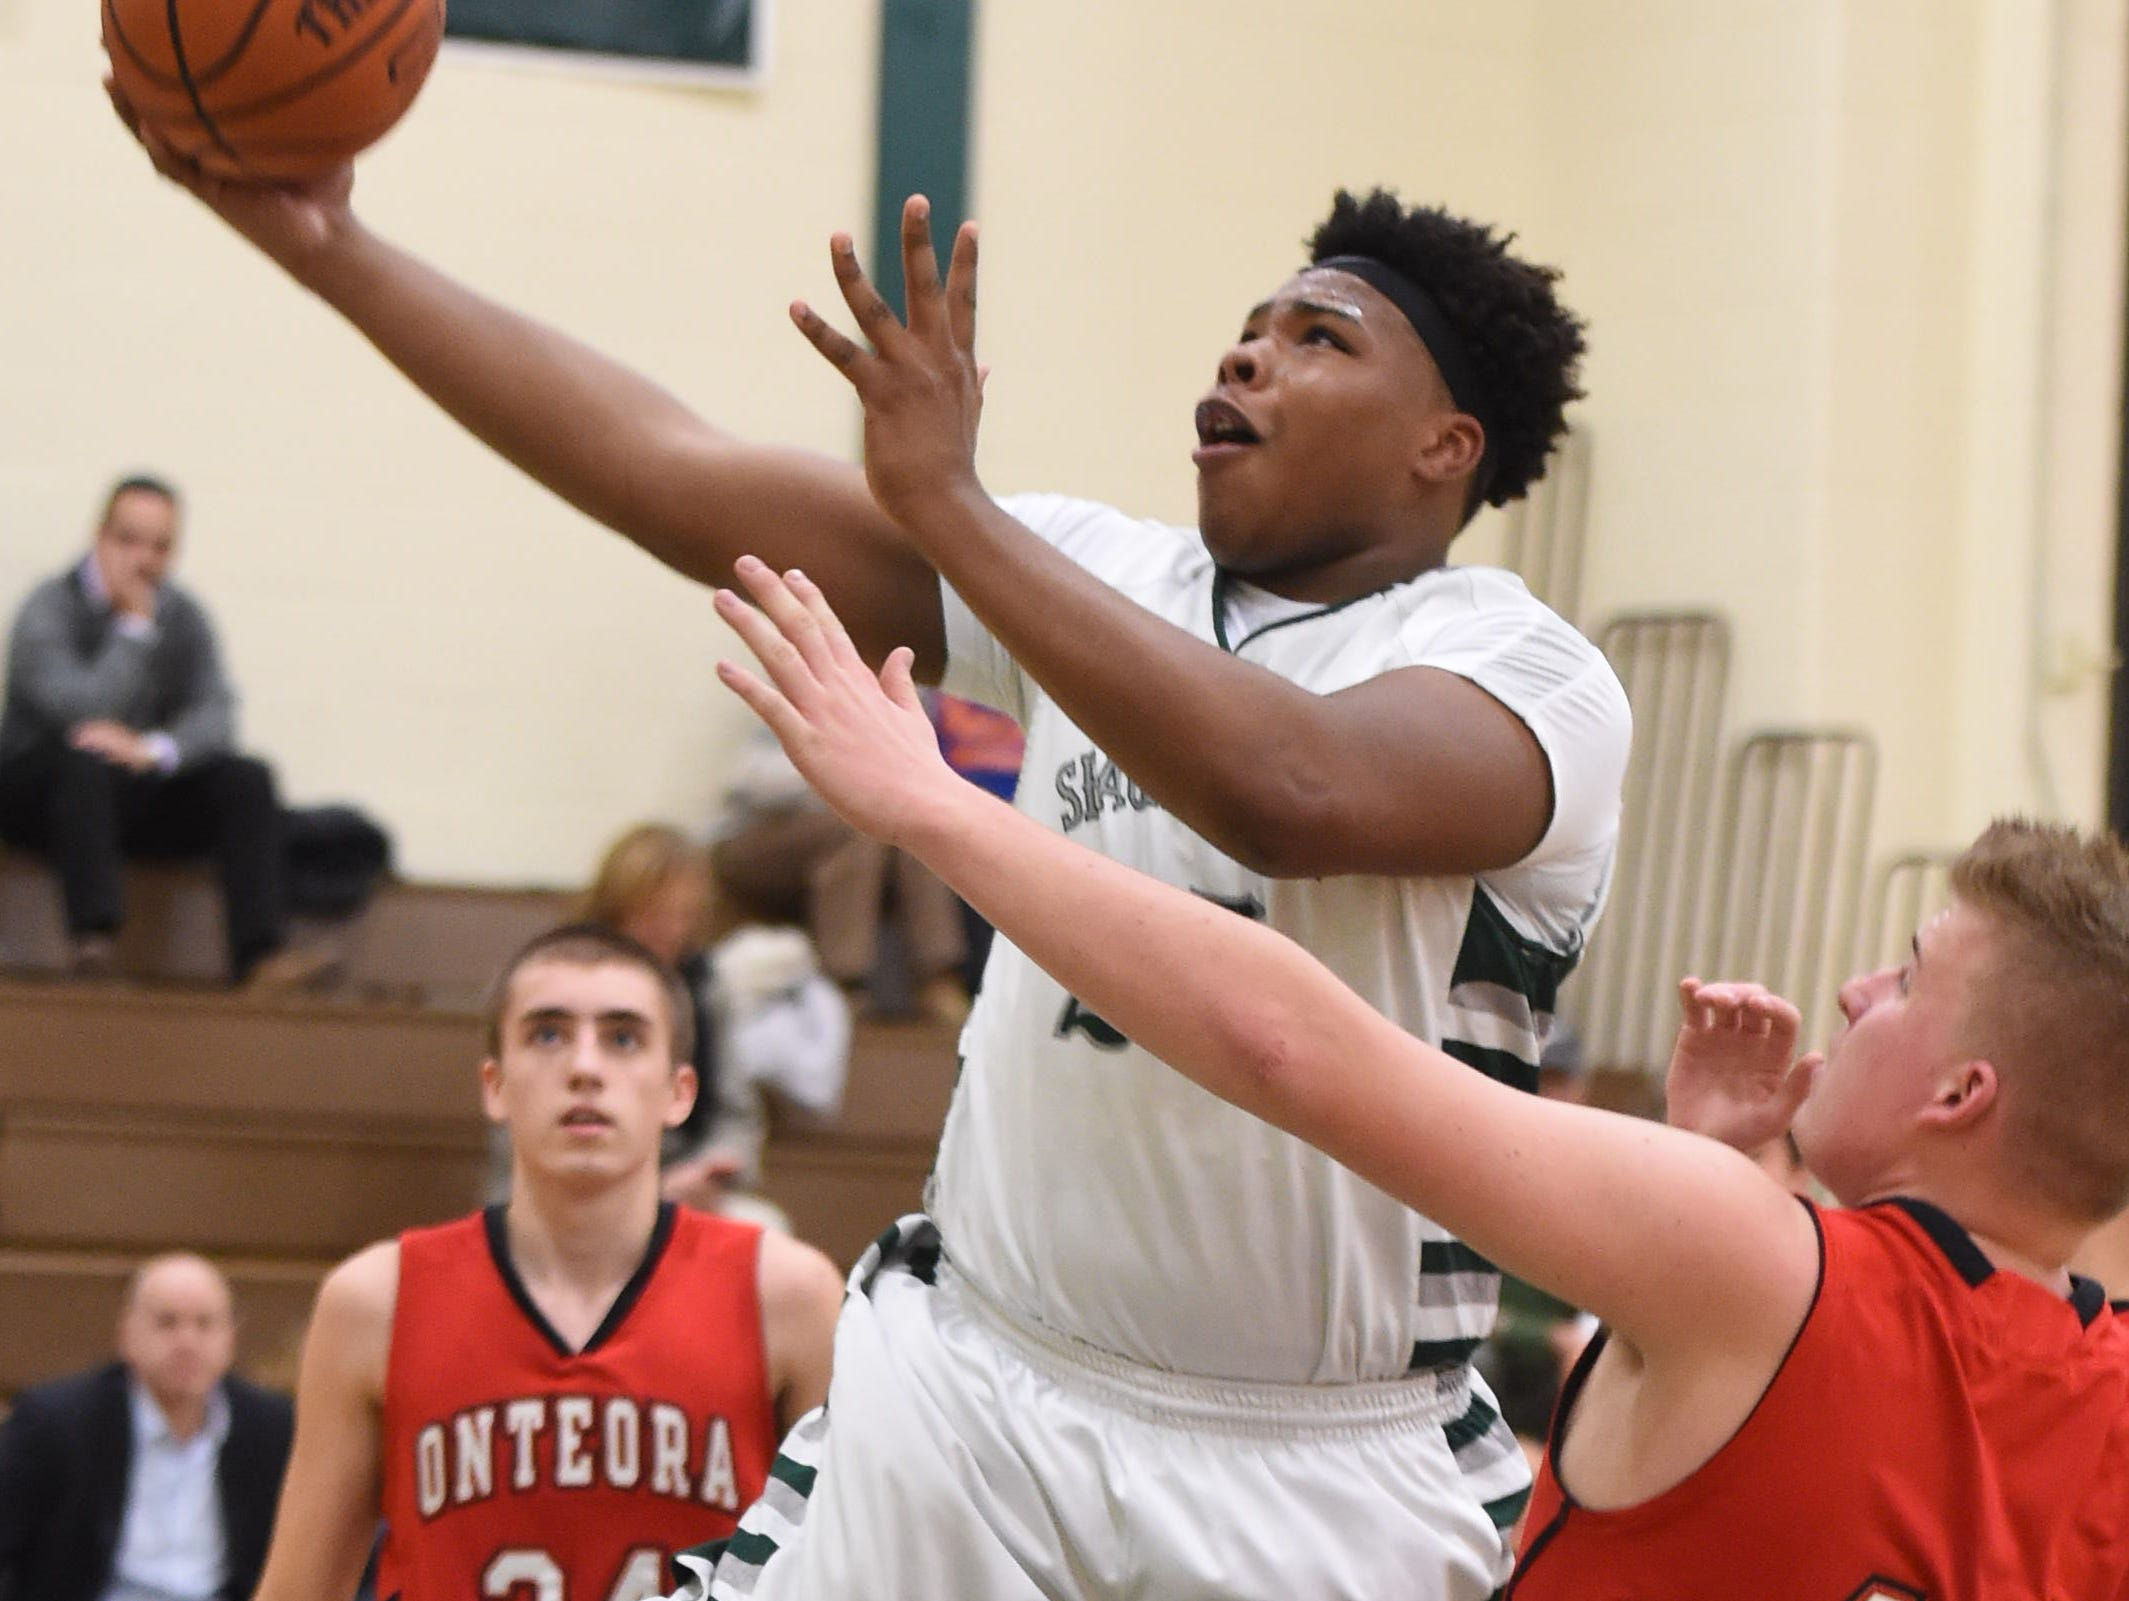 Spackenkill's Kyiev Bennermon goes for a layup past Onteora's, from left, Matthew Vines, and Nicholas Fulford during Thursday's game at Spackenkill.